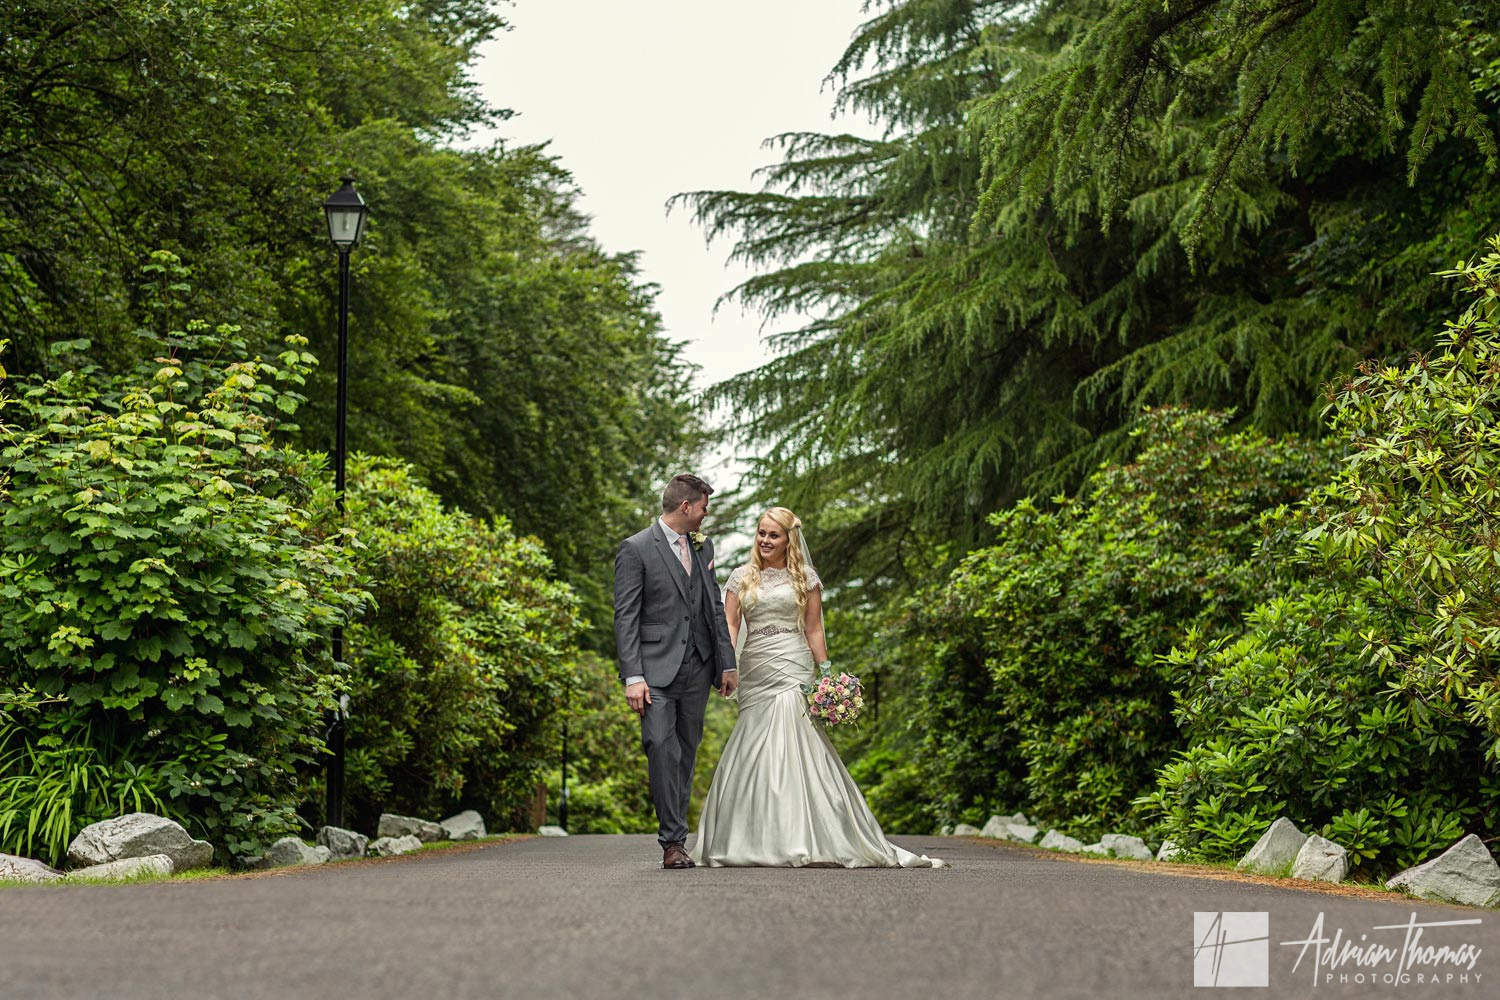 Bride and groom walking hand in hand outside the Maes Manor Hotel wedding venue in Blackwood.